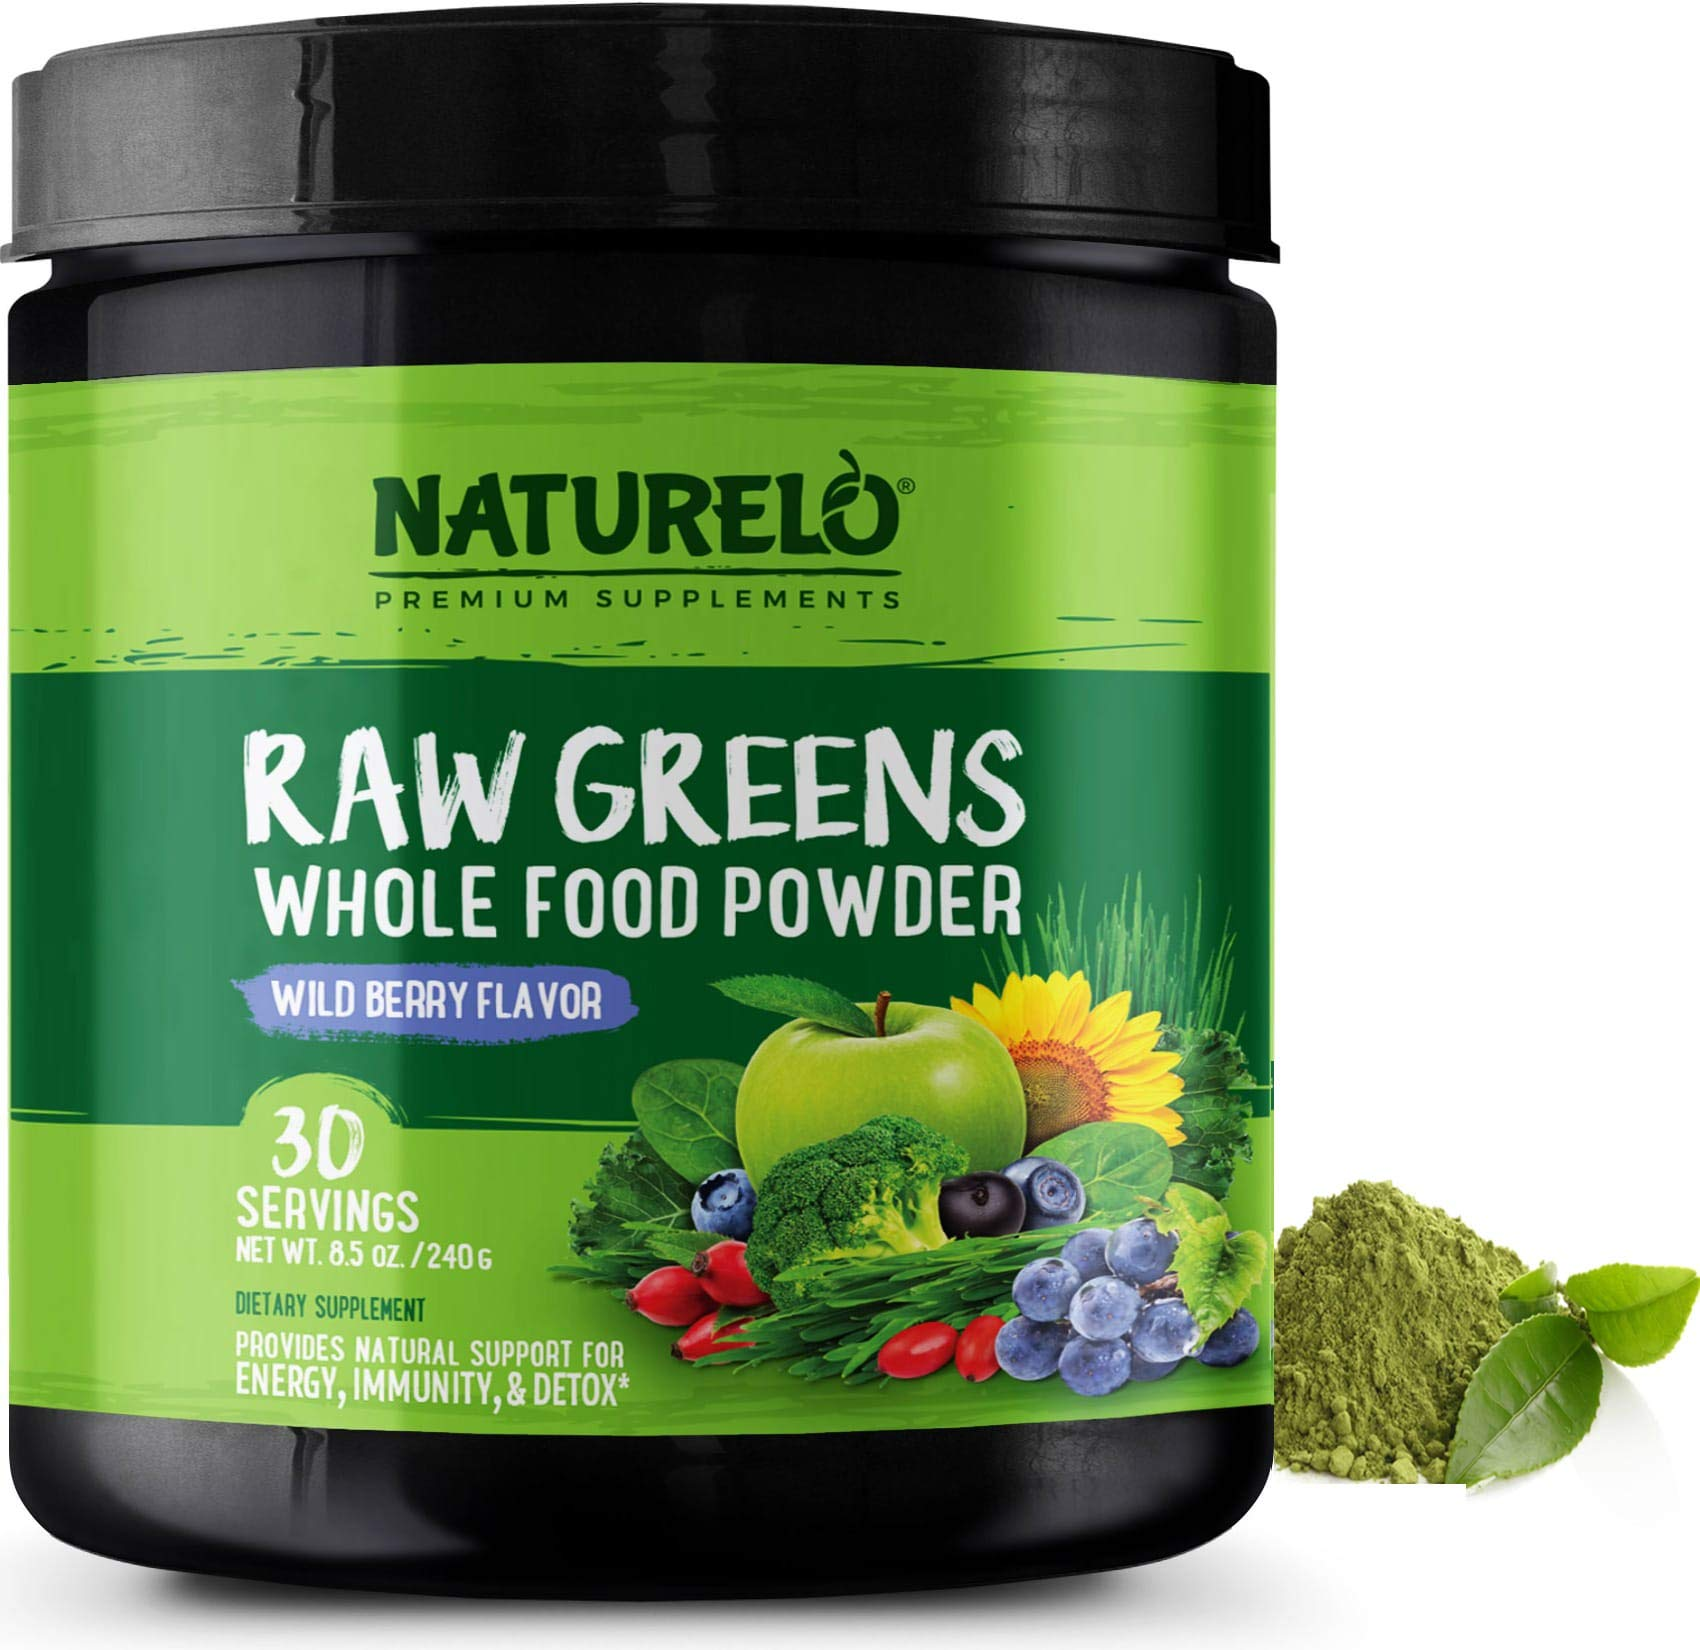 NATURELO Raw Greens Superfood Powder - Supplement to Boost Energy, Detox, Enhance Health - Organic Spirulina & Wheat Grass - Whole Food Nutrition from Fruits & Vegetables - 30 Servings